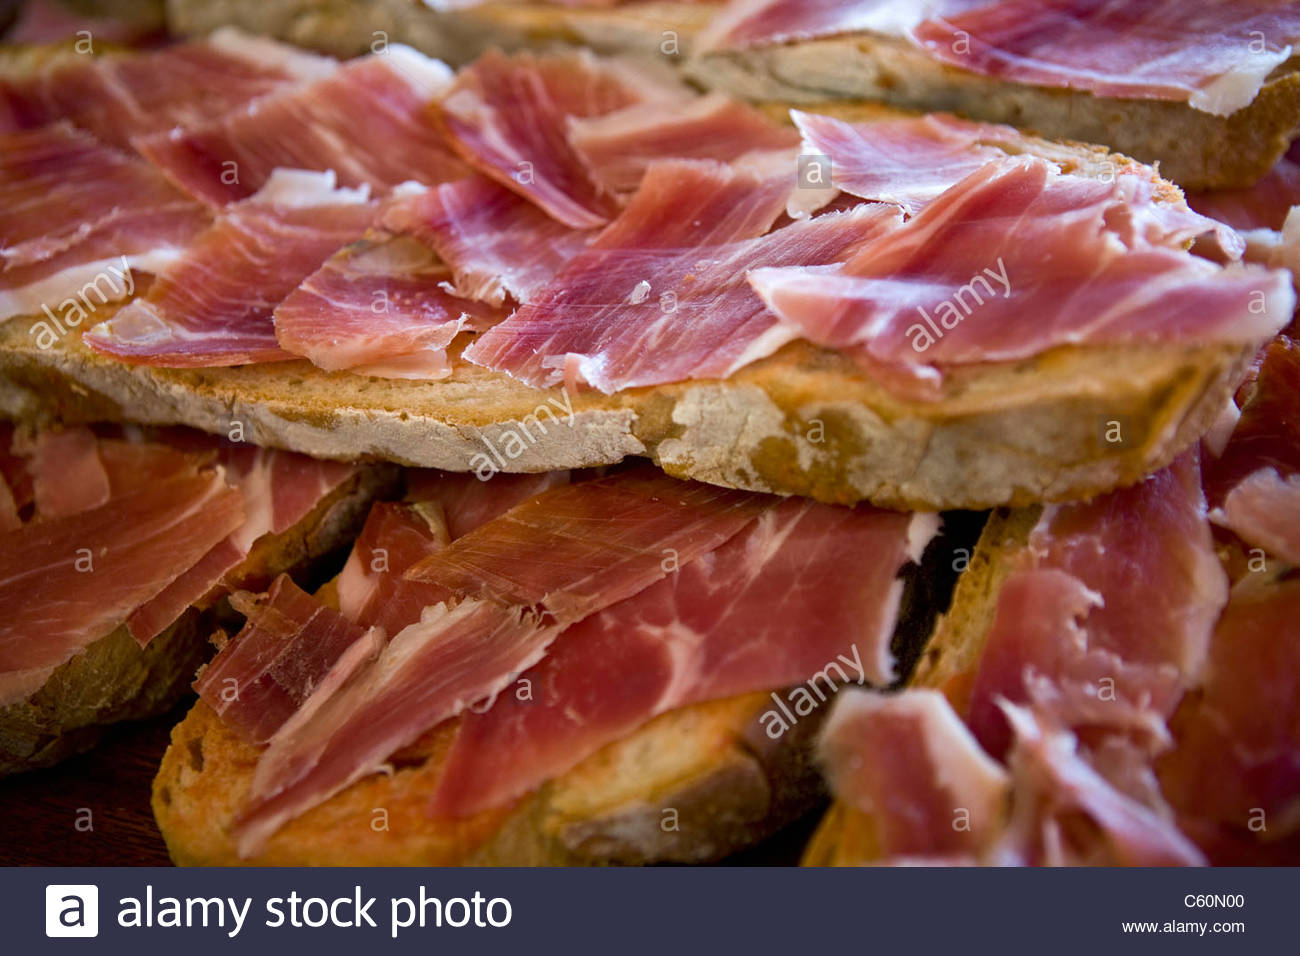 Slices of ham and bread - Stock Image